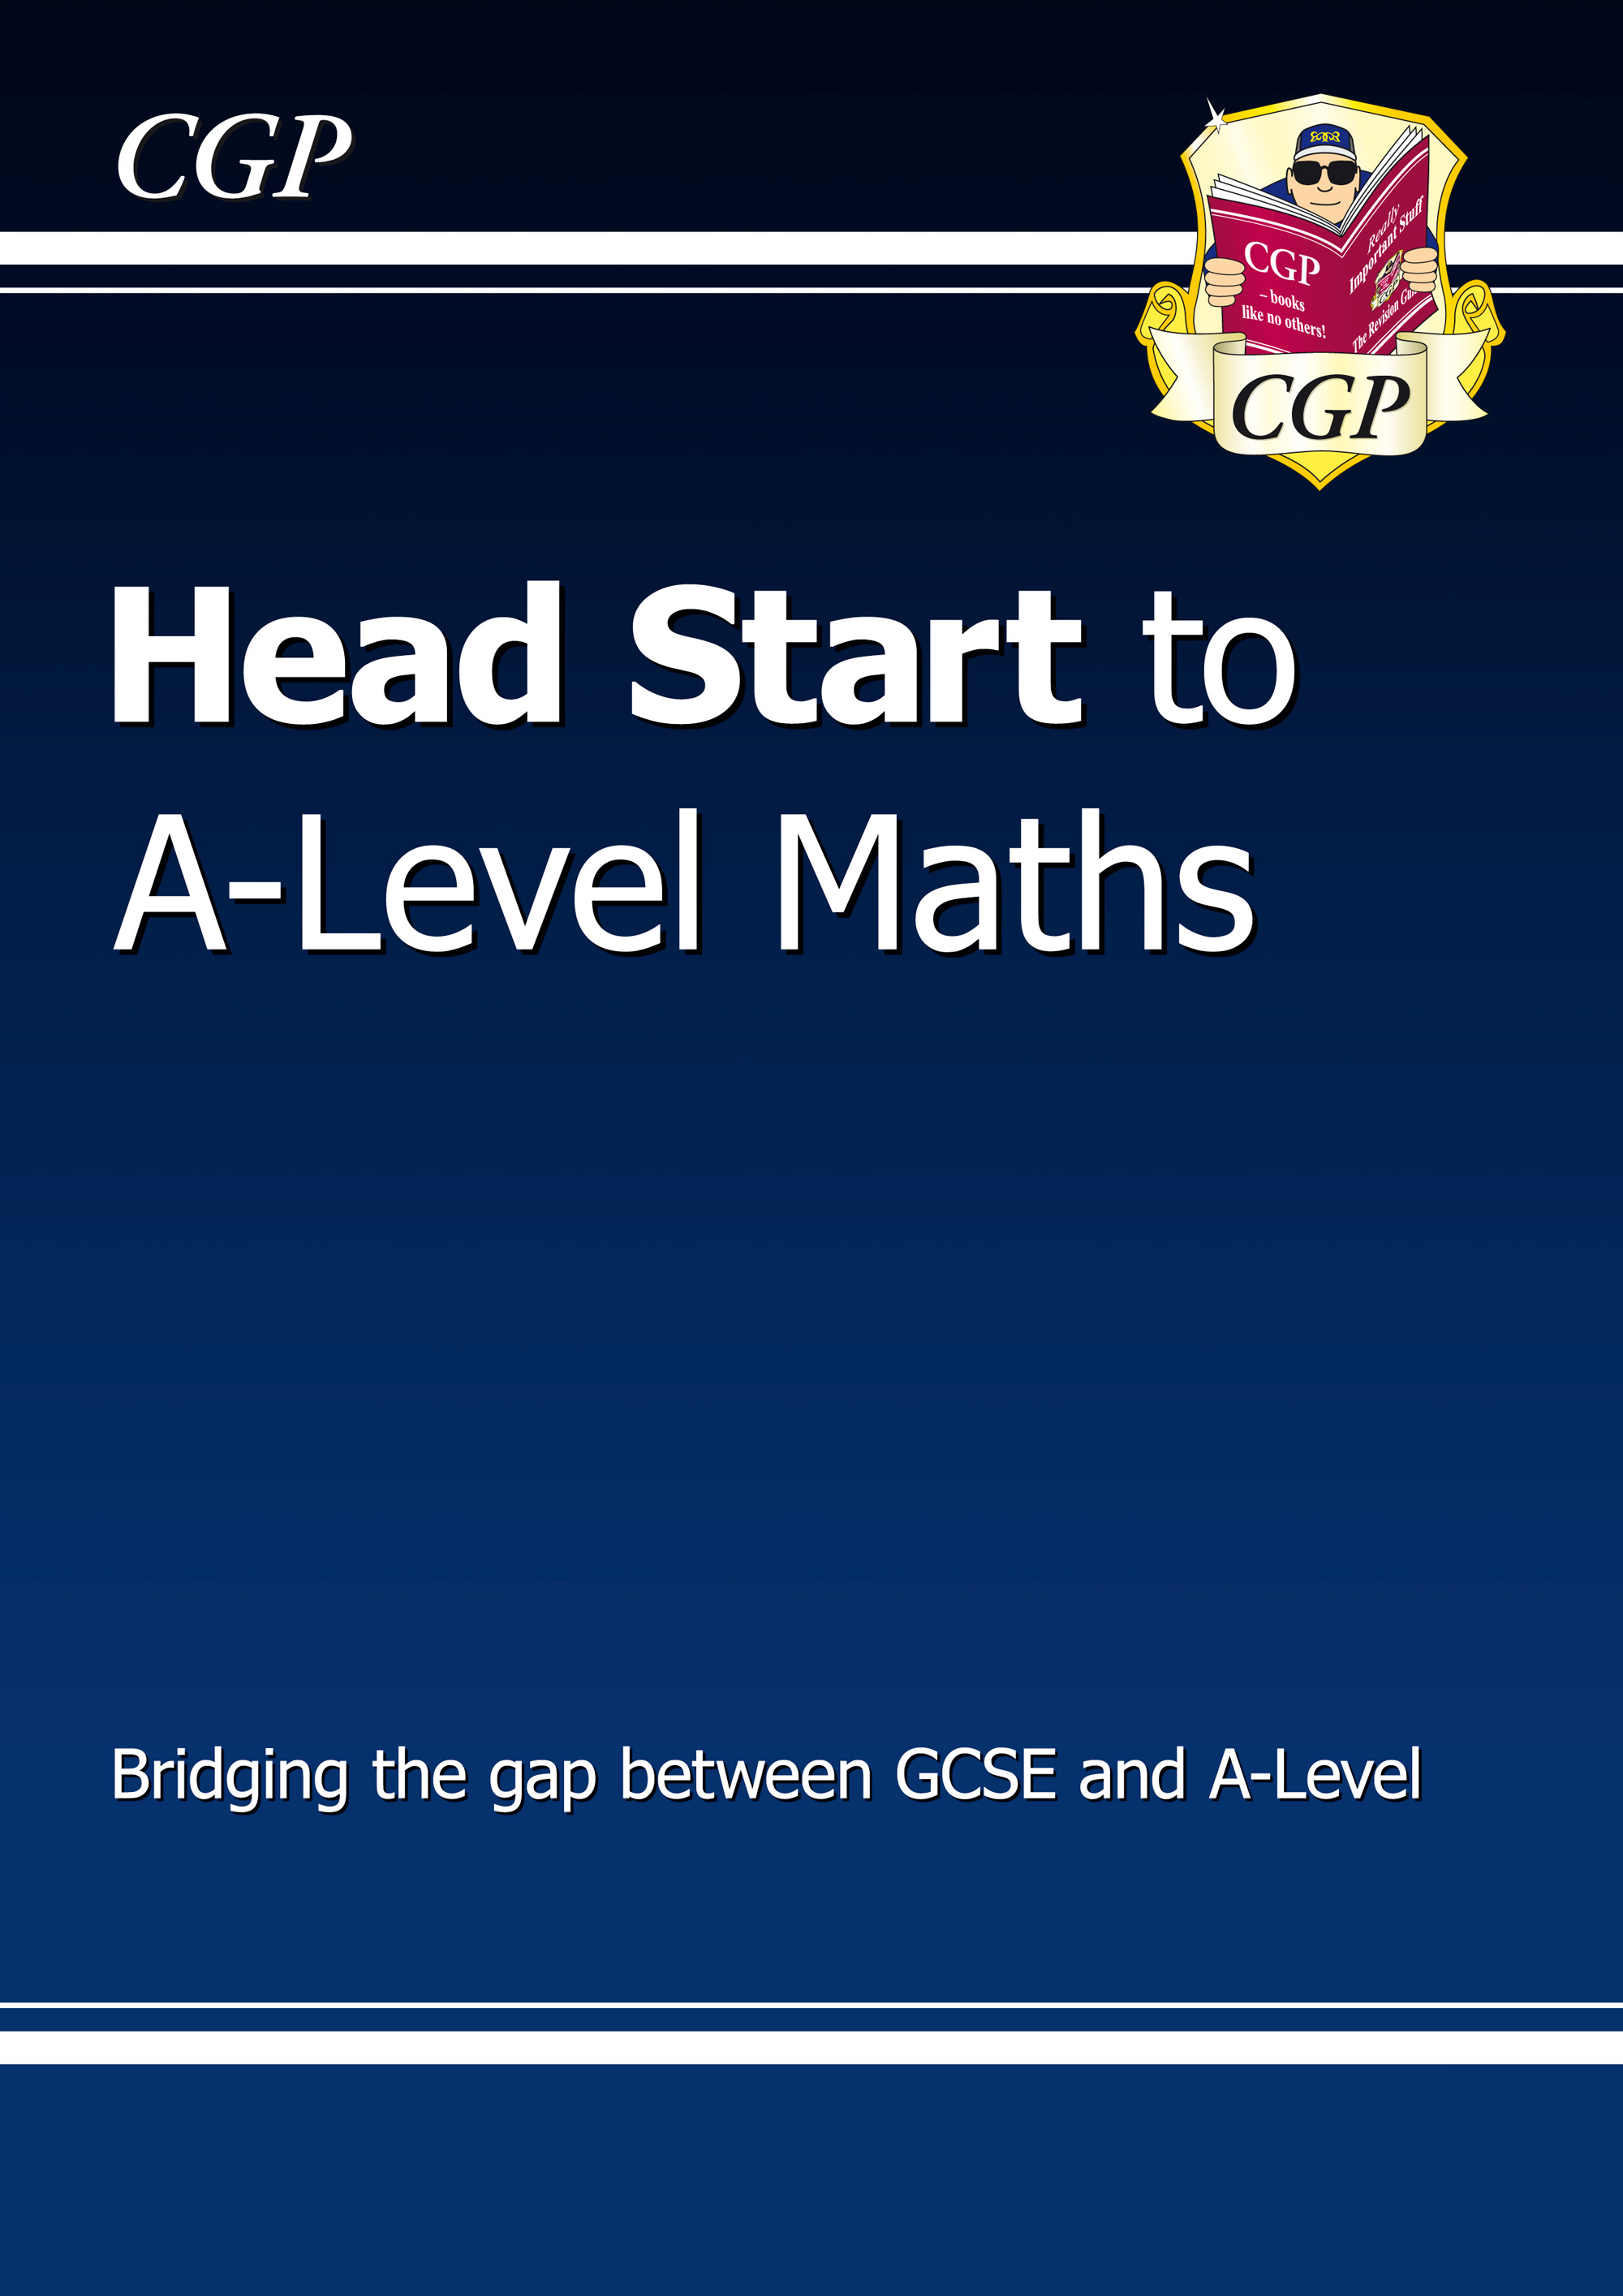 MBR71 - New Head Start to A-Level Maths